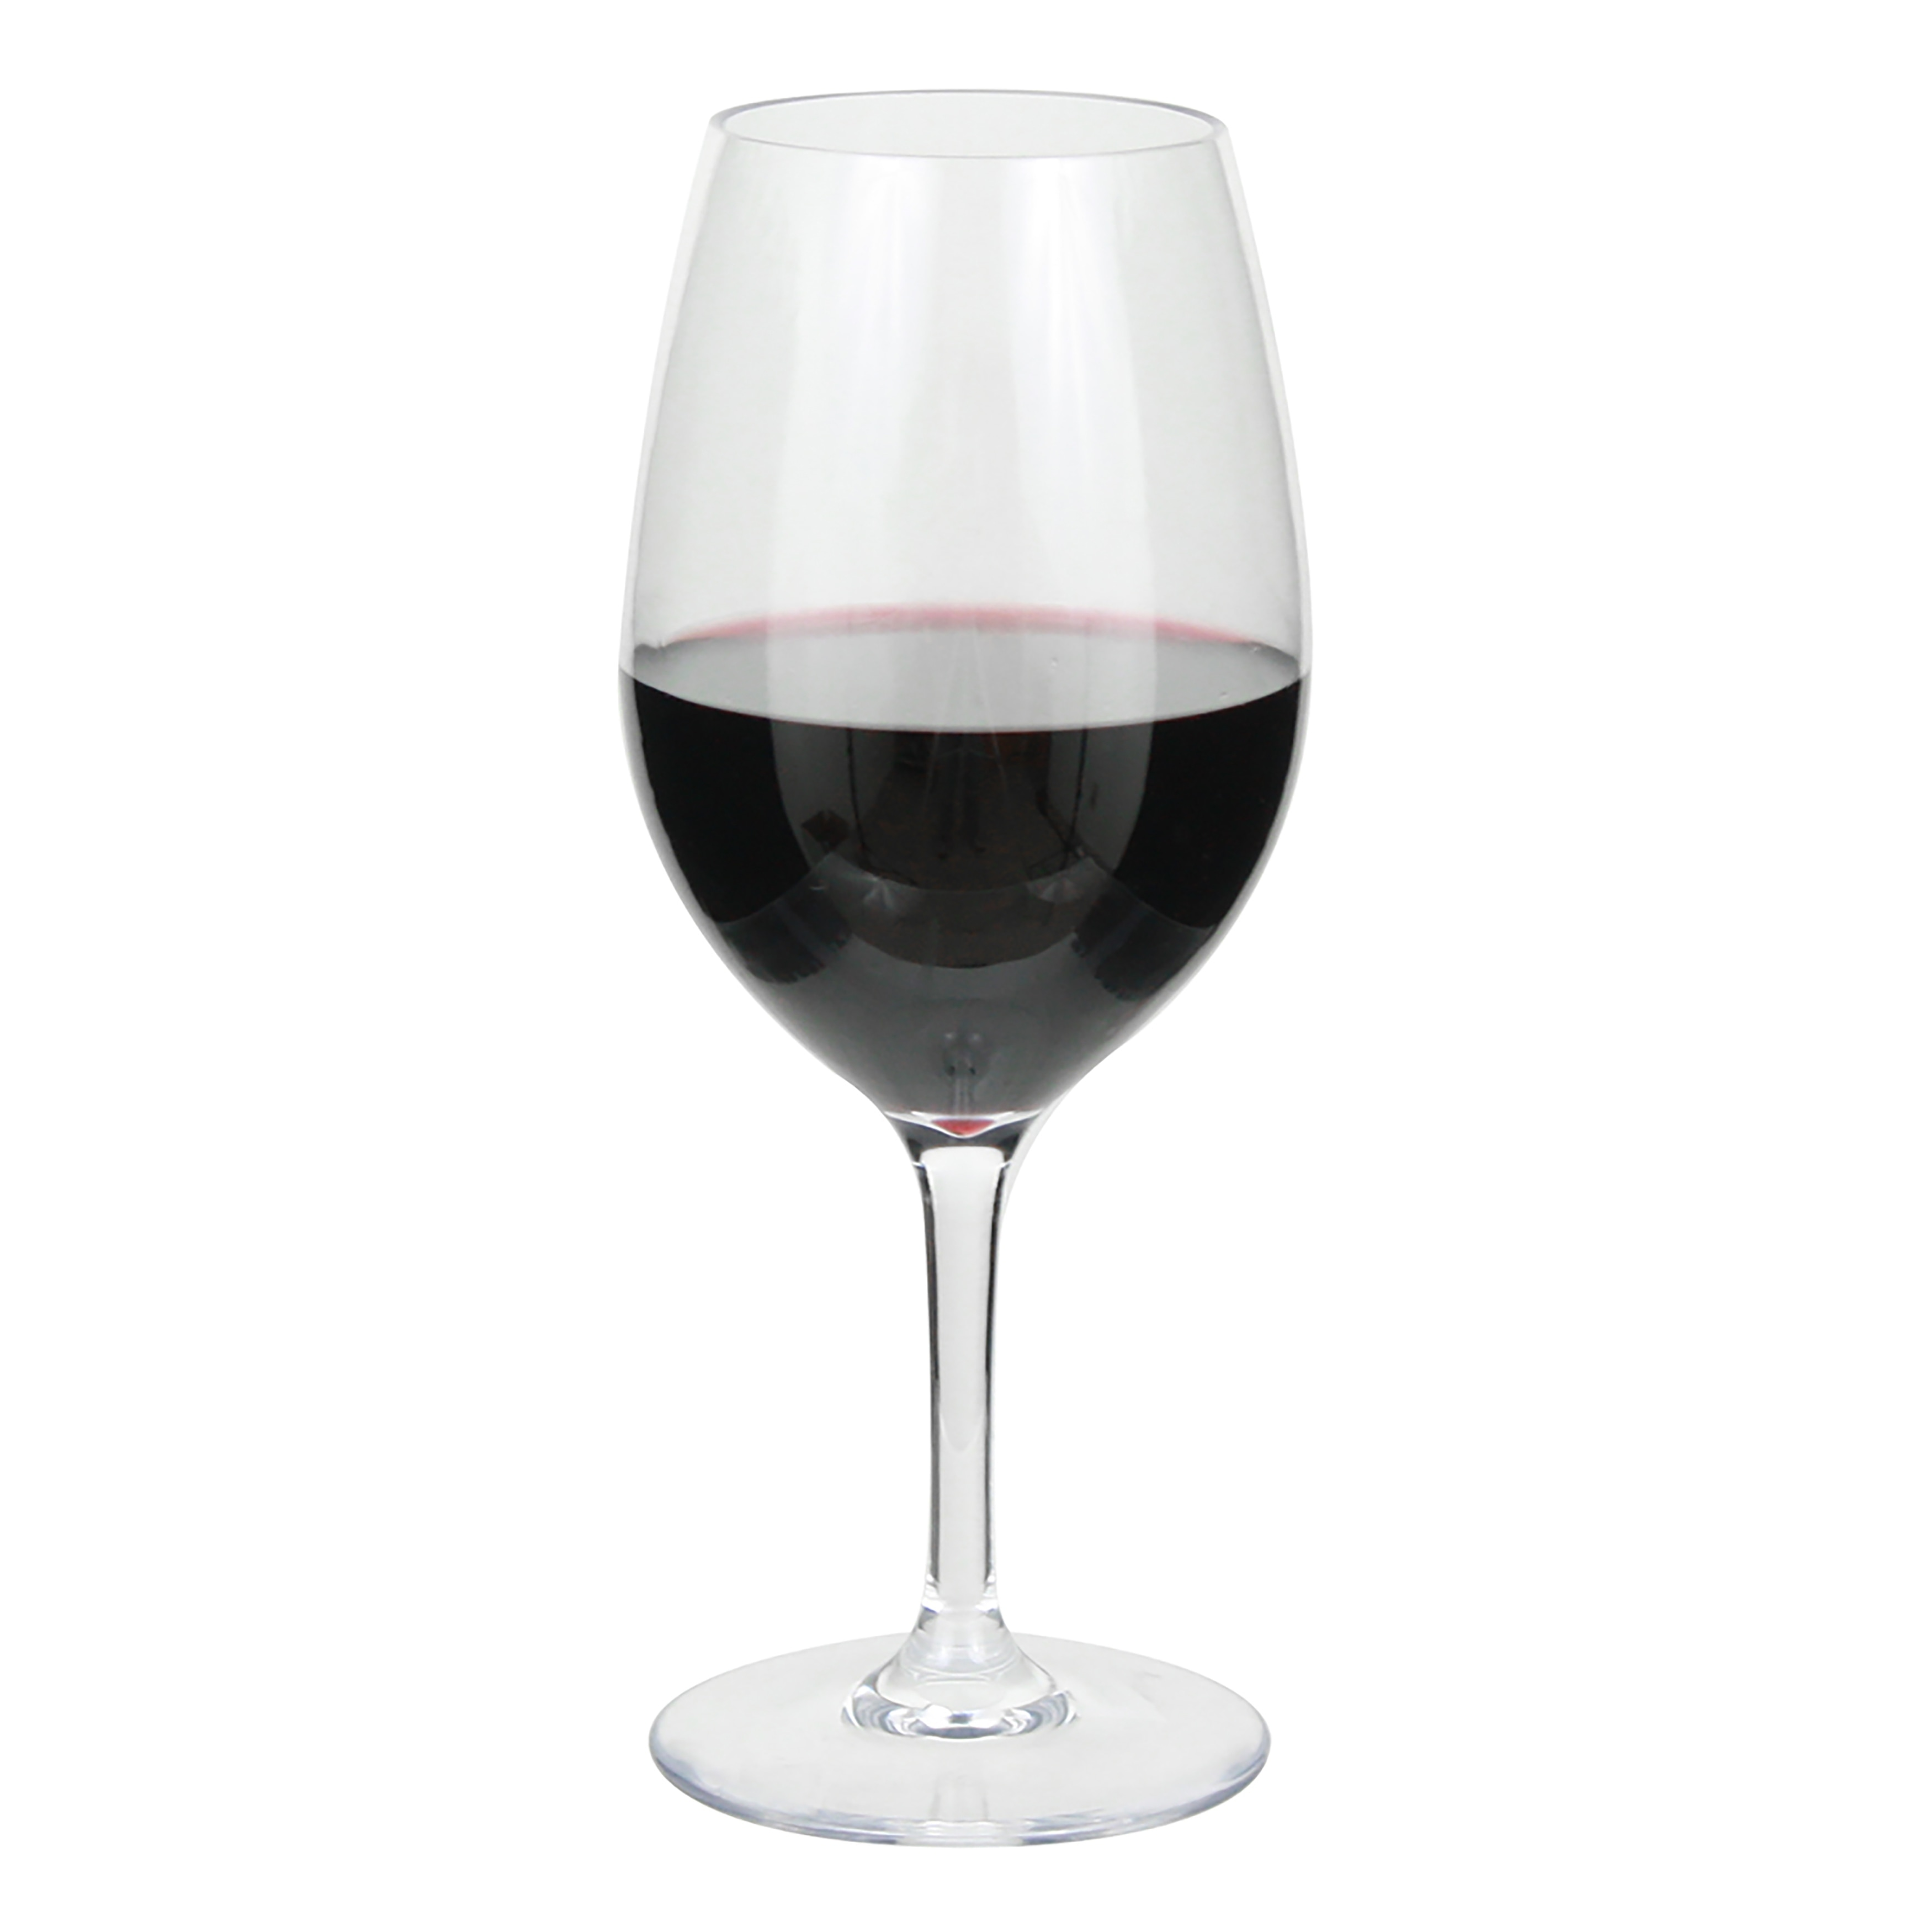 Red Wine Glasses For Sale Buy Red Wine Glasses Wine Glasses Online At Overstock Our Best